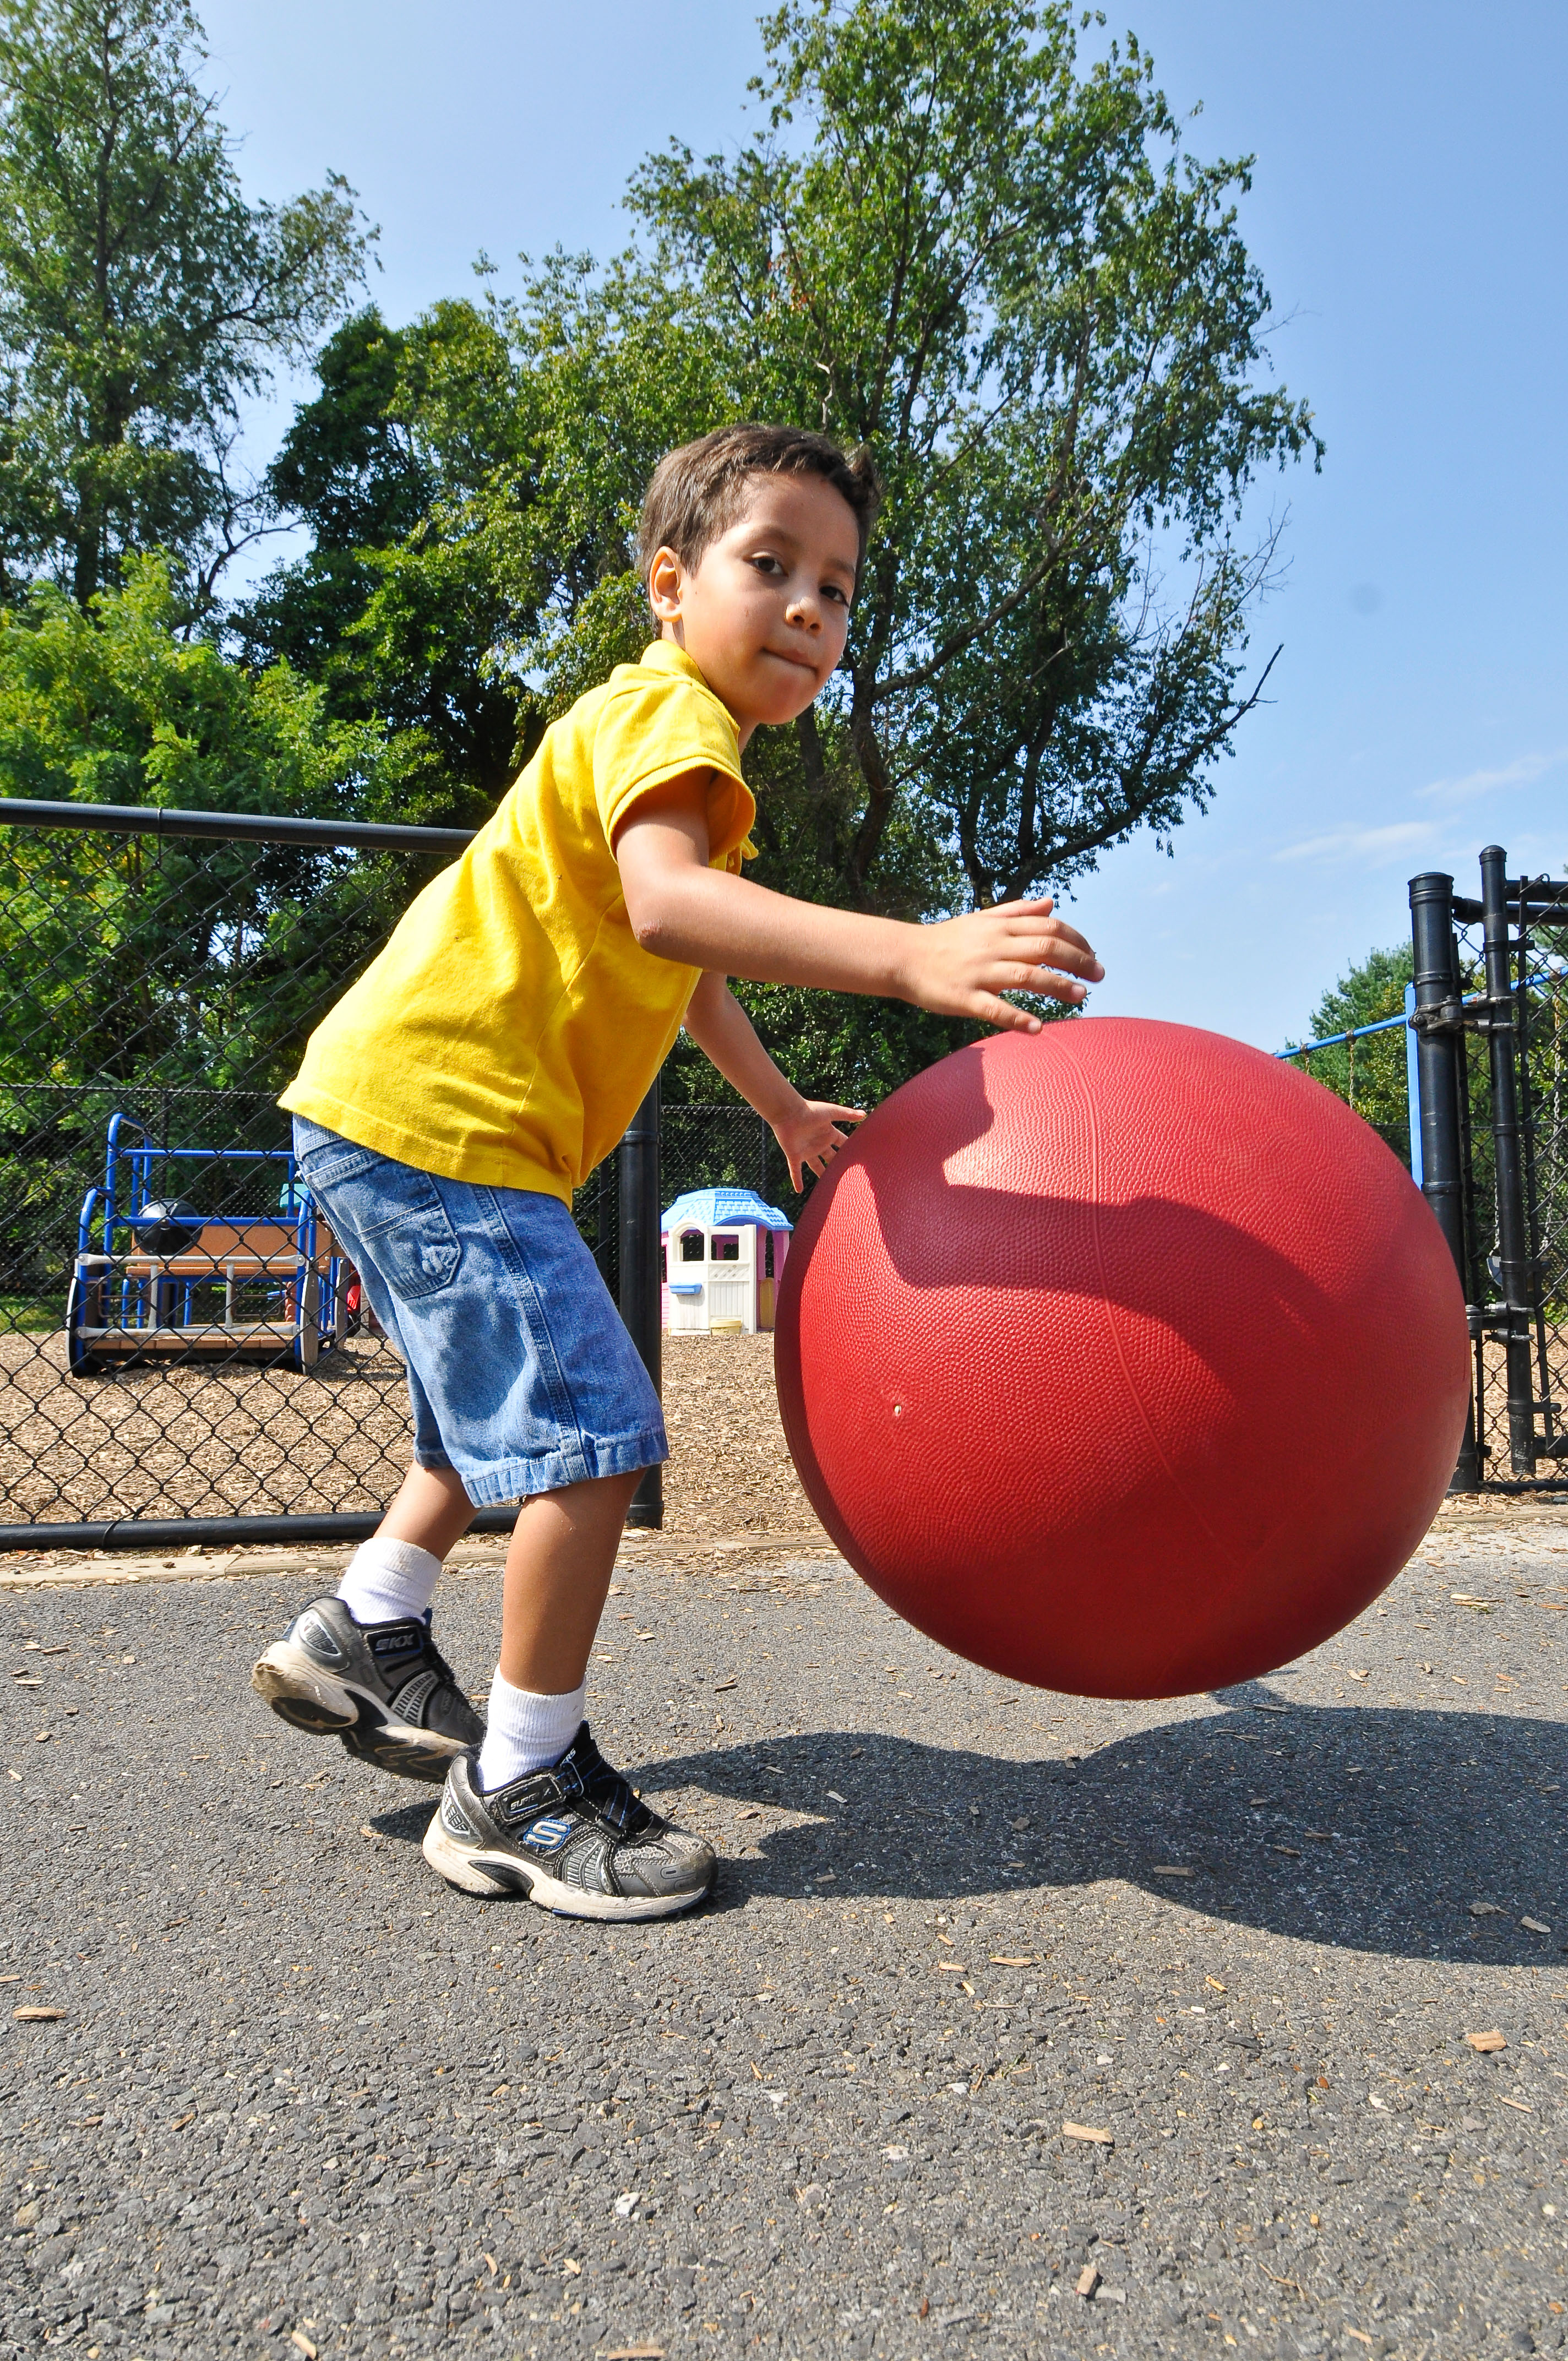 Who Plays a Role in Helping Children Achieve a Healthy Weight?